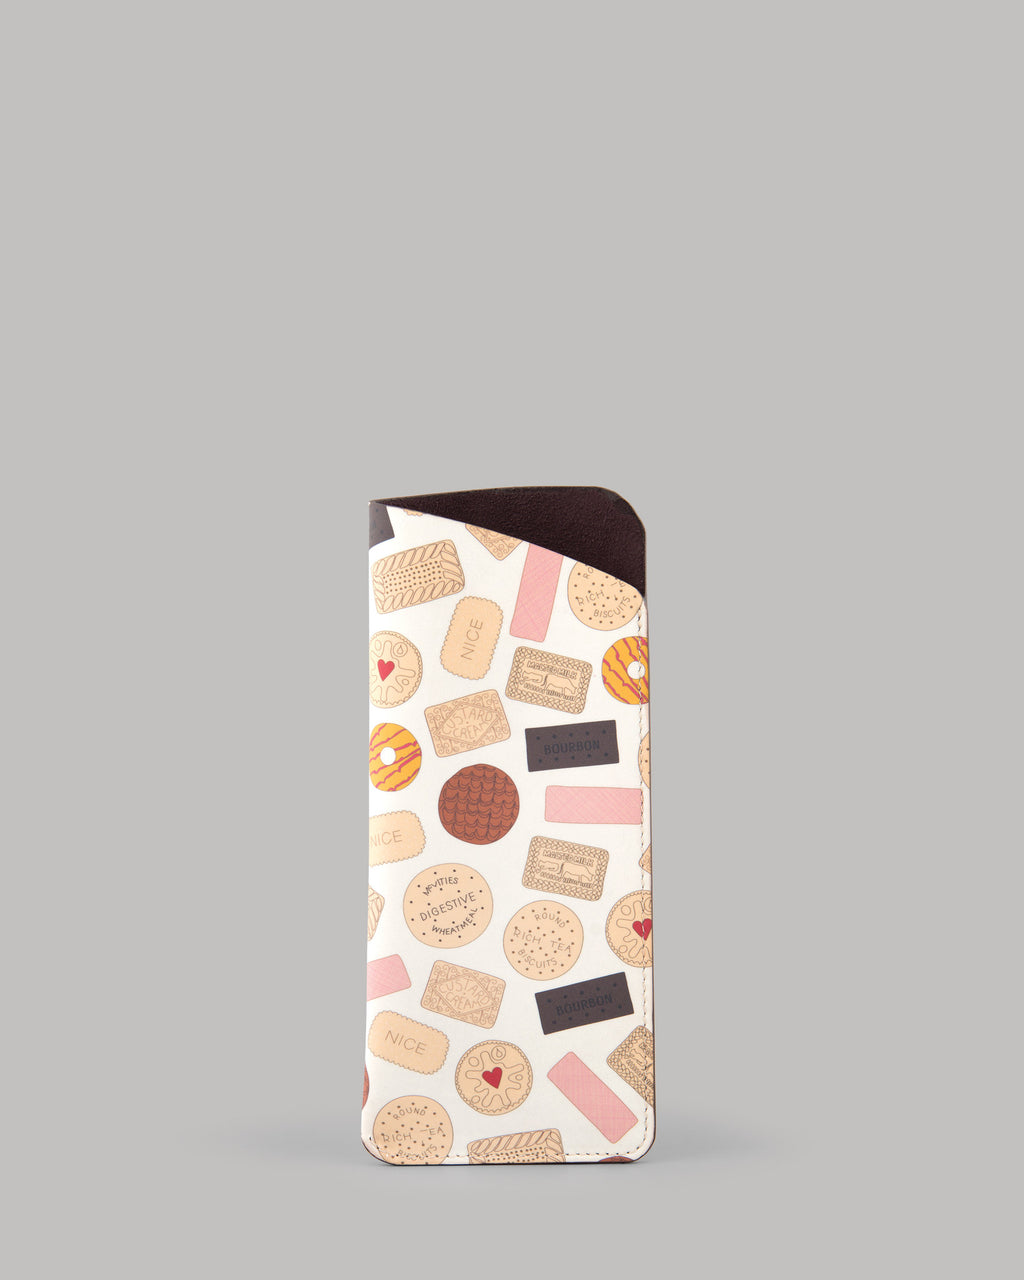 Oh Crumbs Biscuits Ladies Leather Glasses Case by Yoshi A